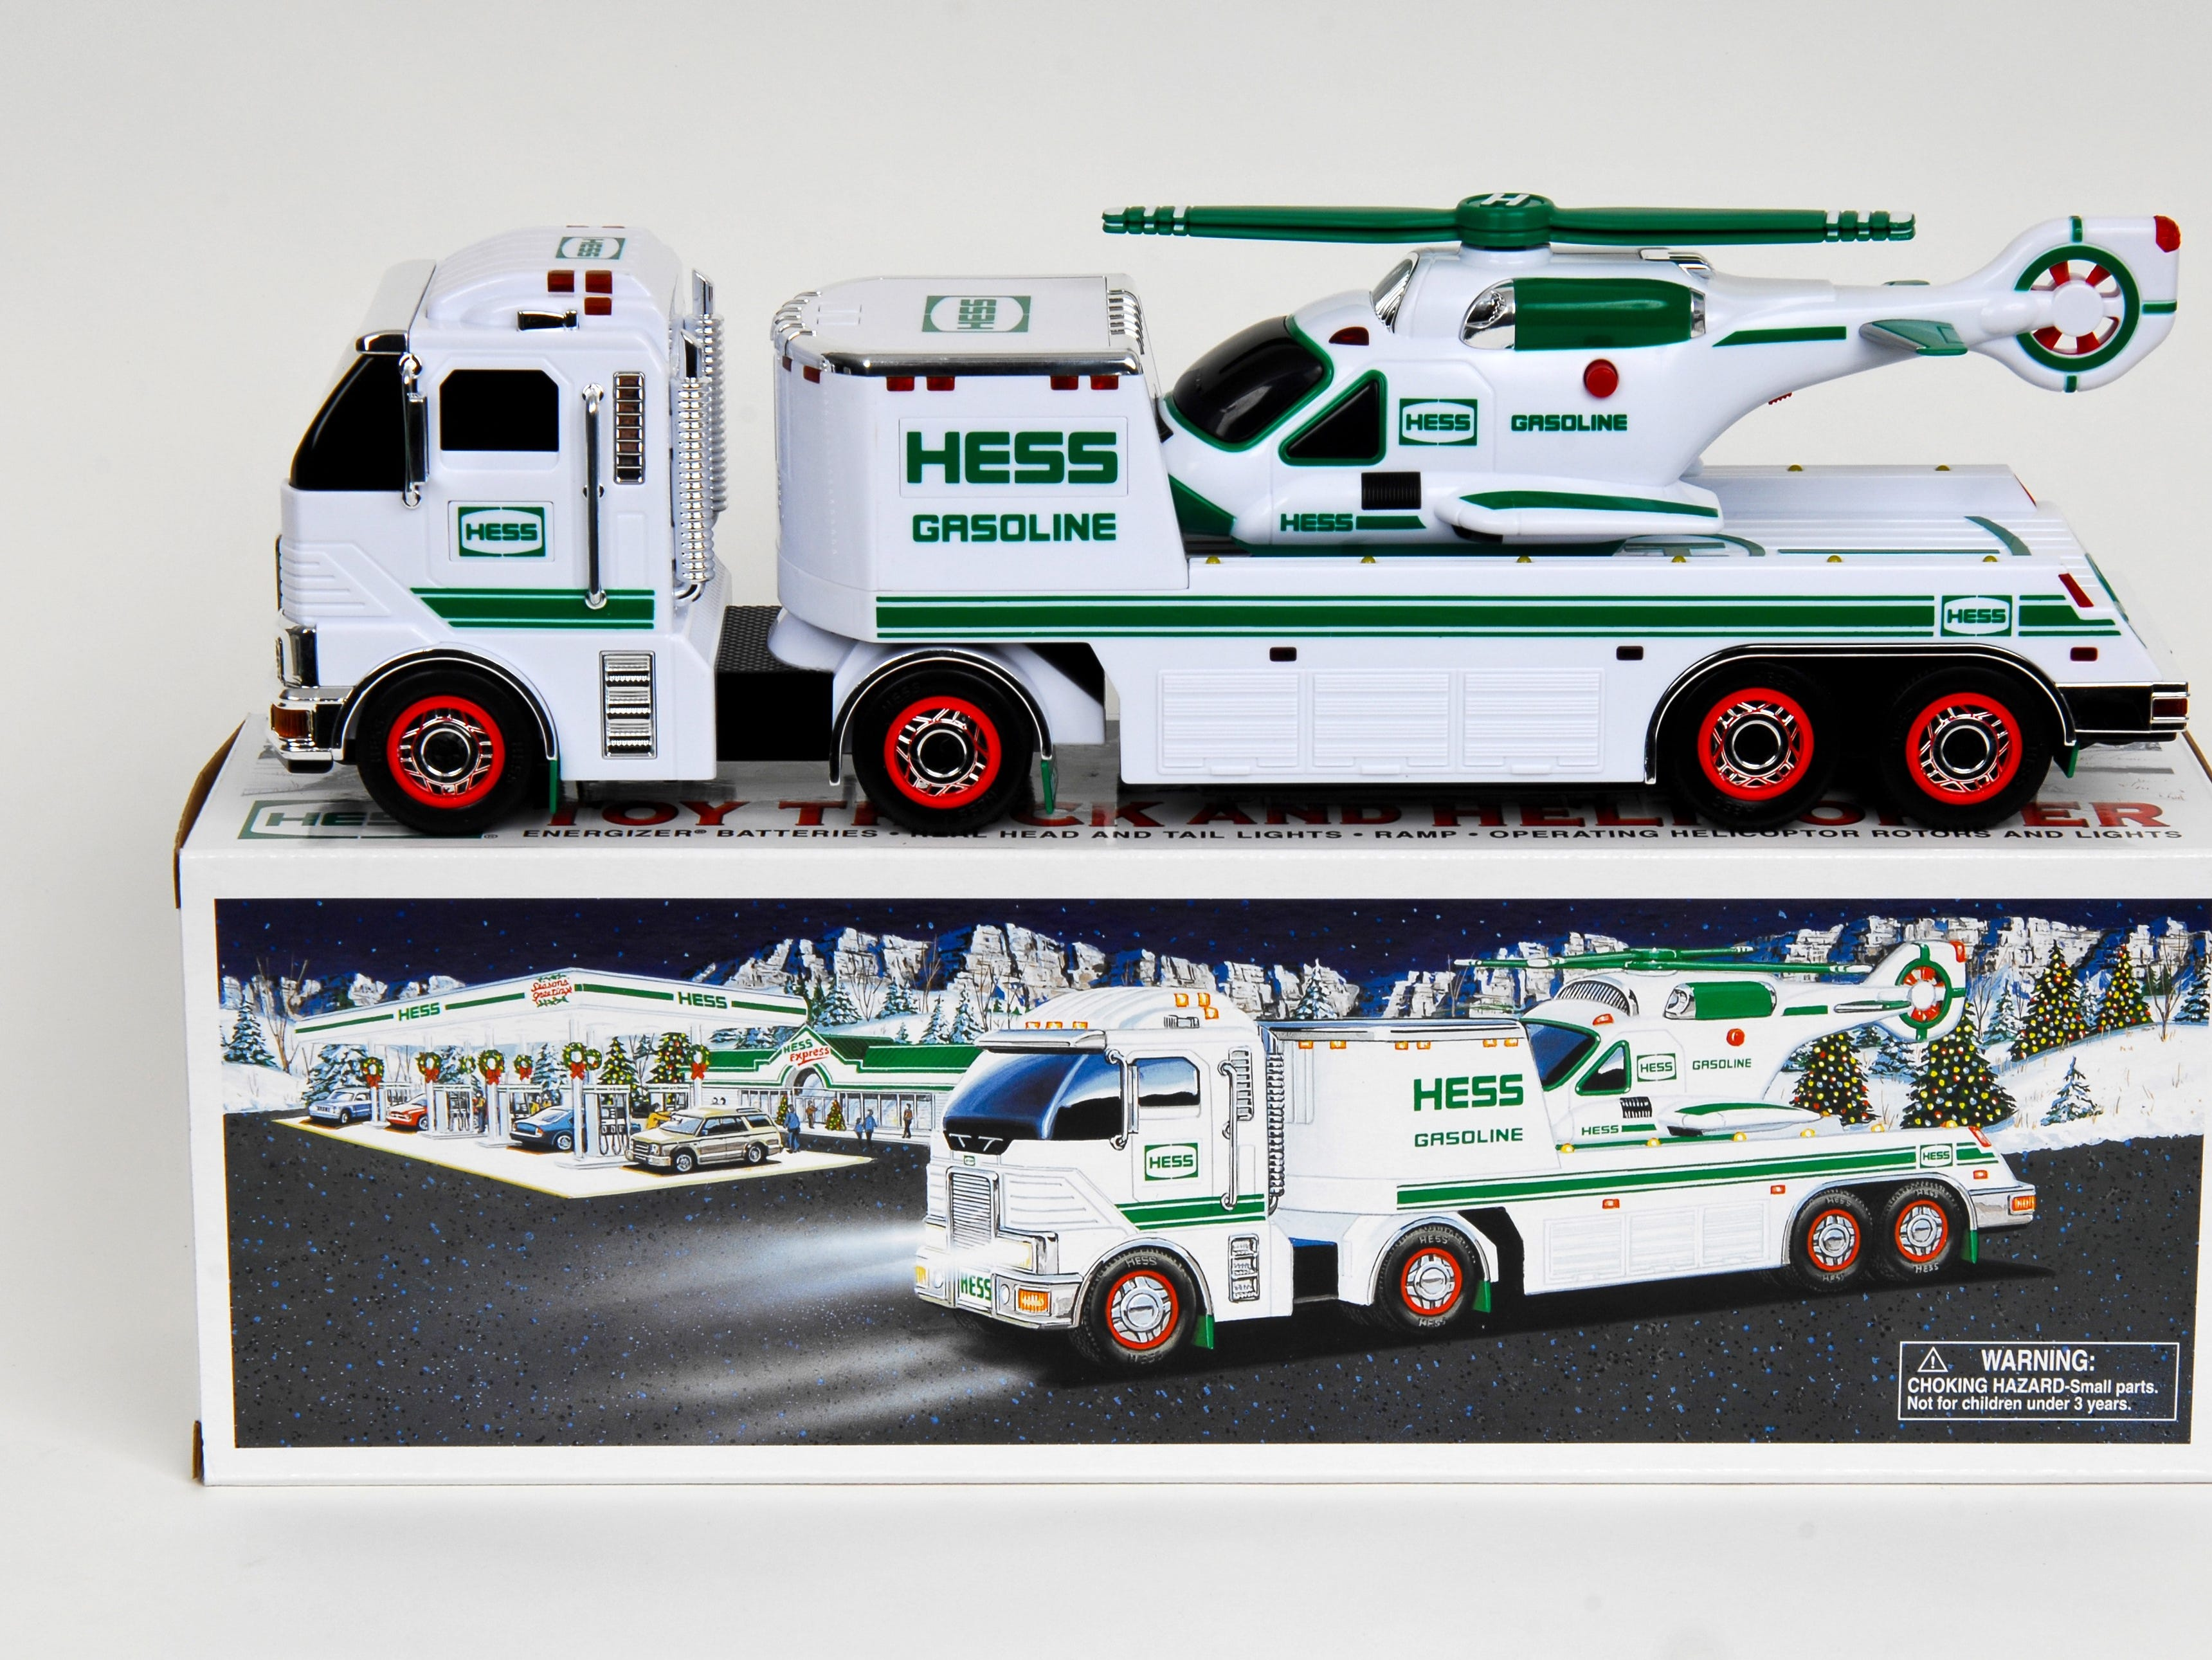 The 2006 Hess toy truck.